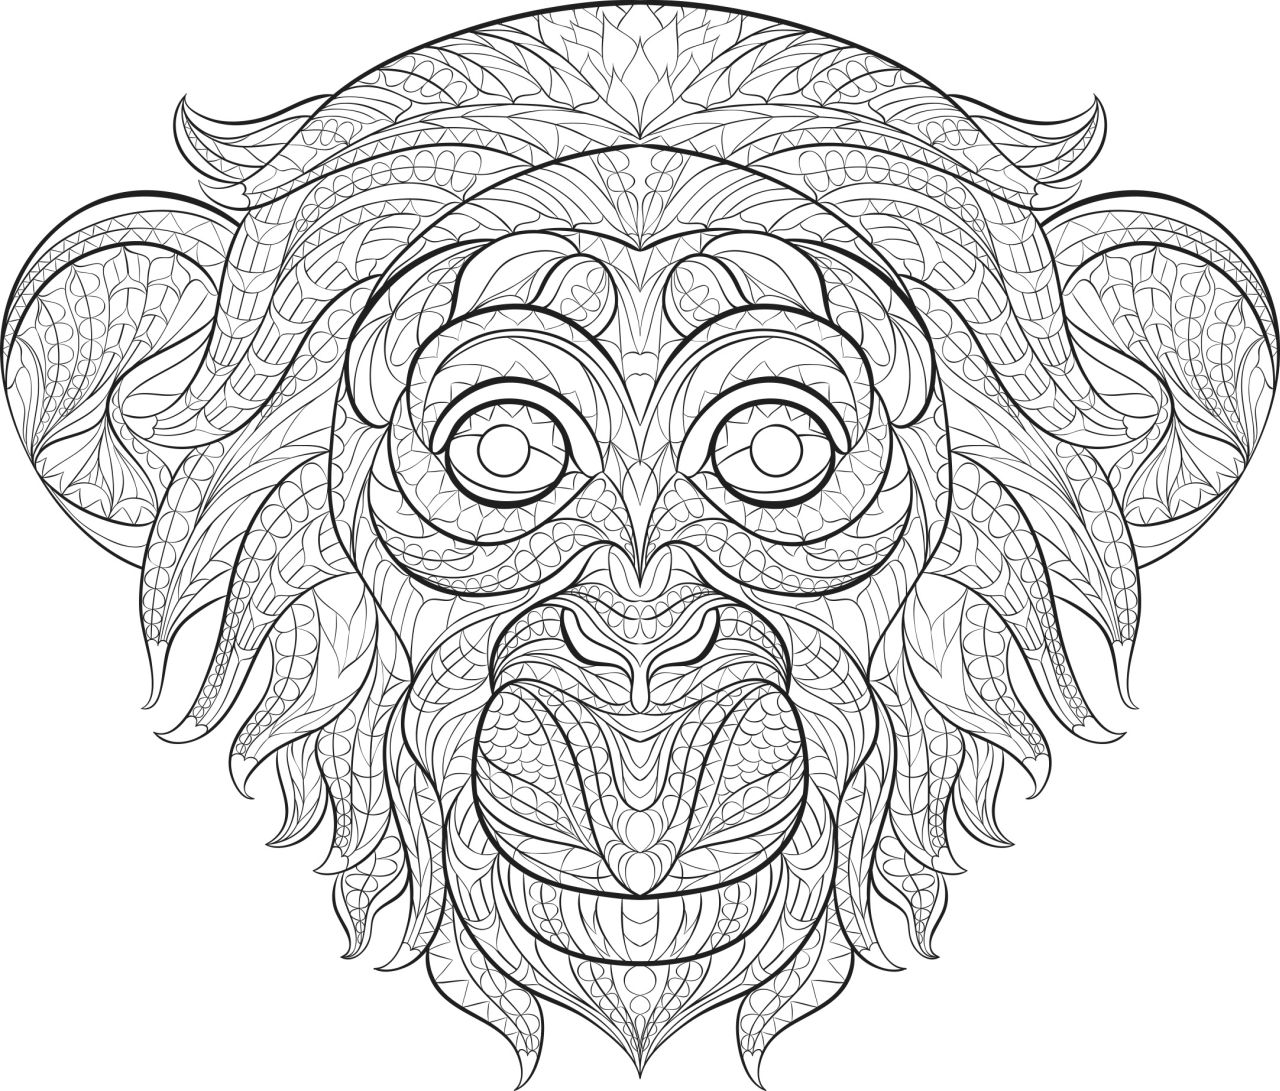 Get This Monkey Coloring Pages For Adults 60731